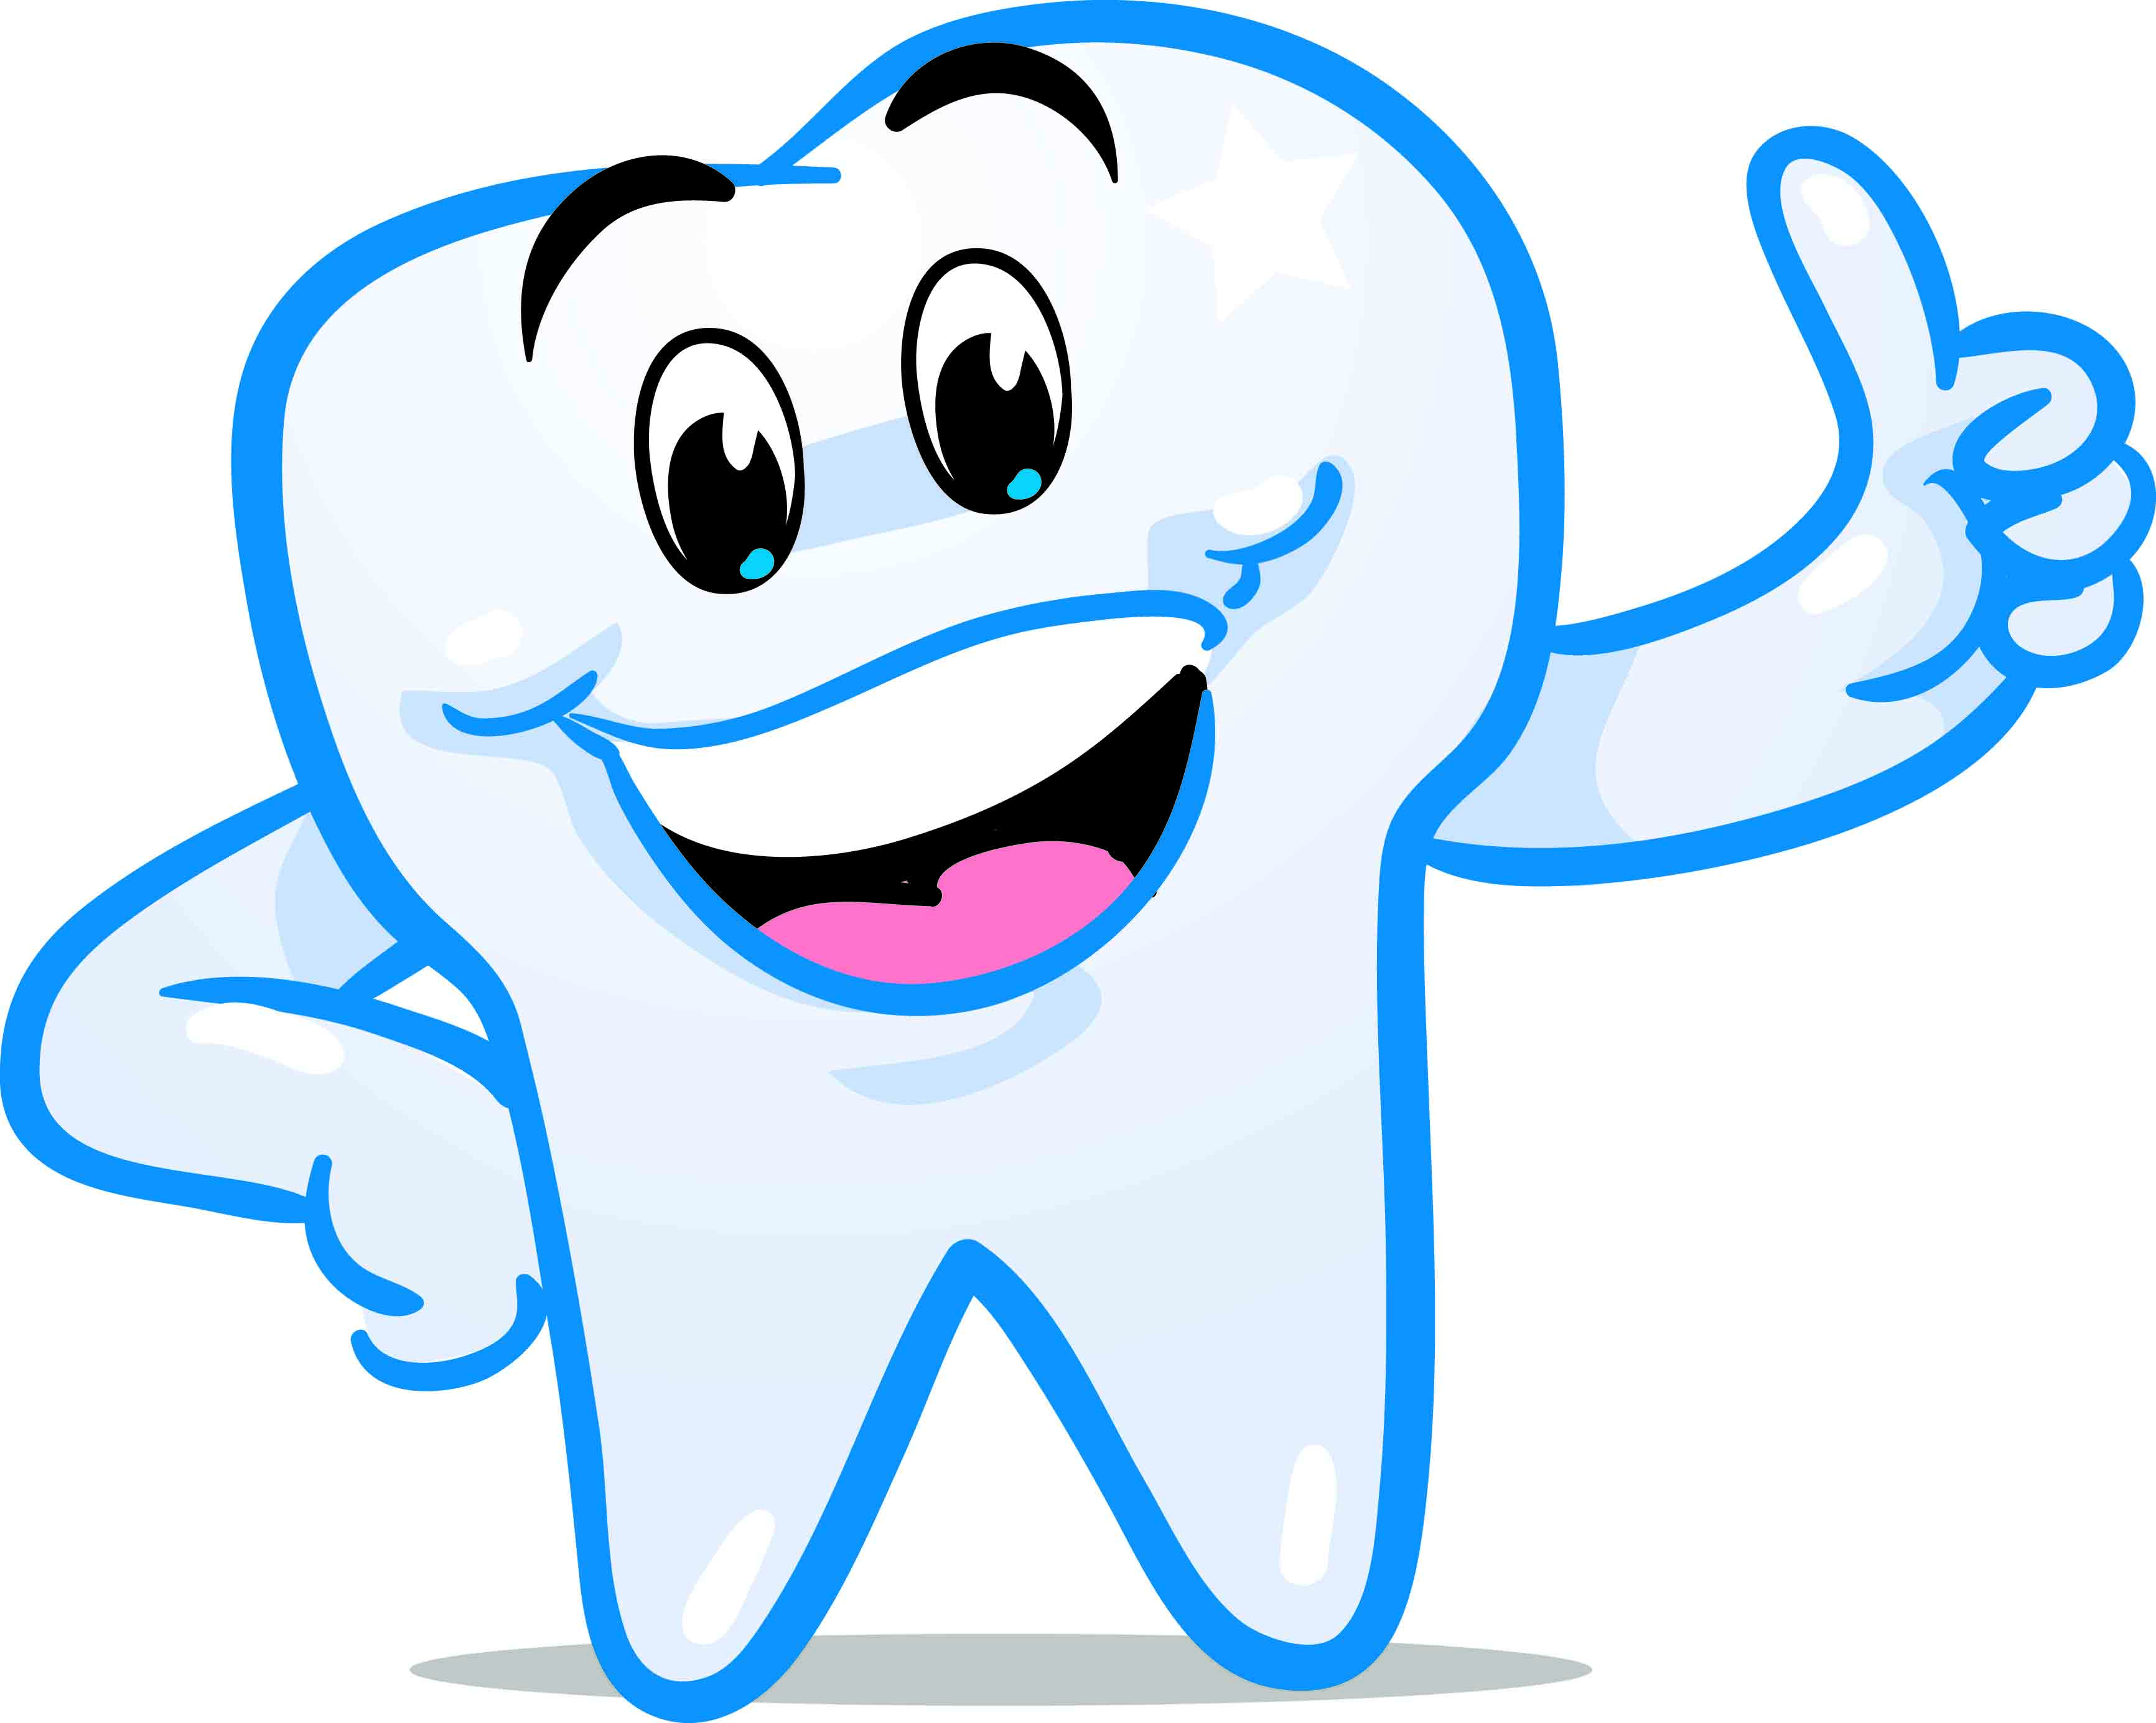 Healthy teeth clipart graphic library stock Free Dental Health Clipart, Download Free Clip Art, Free ... graphic library stock